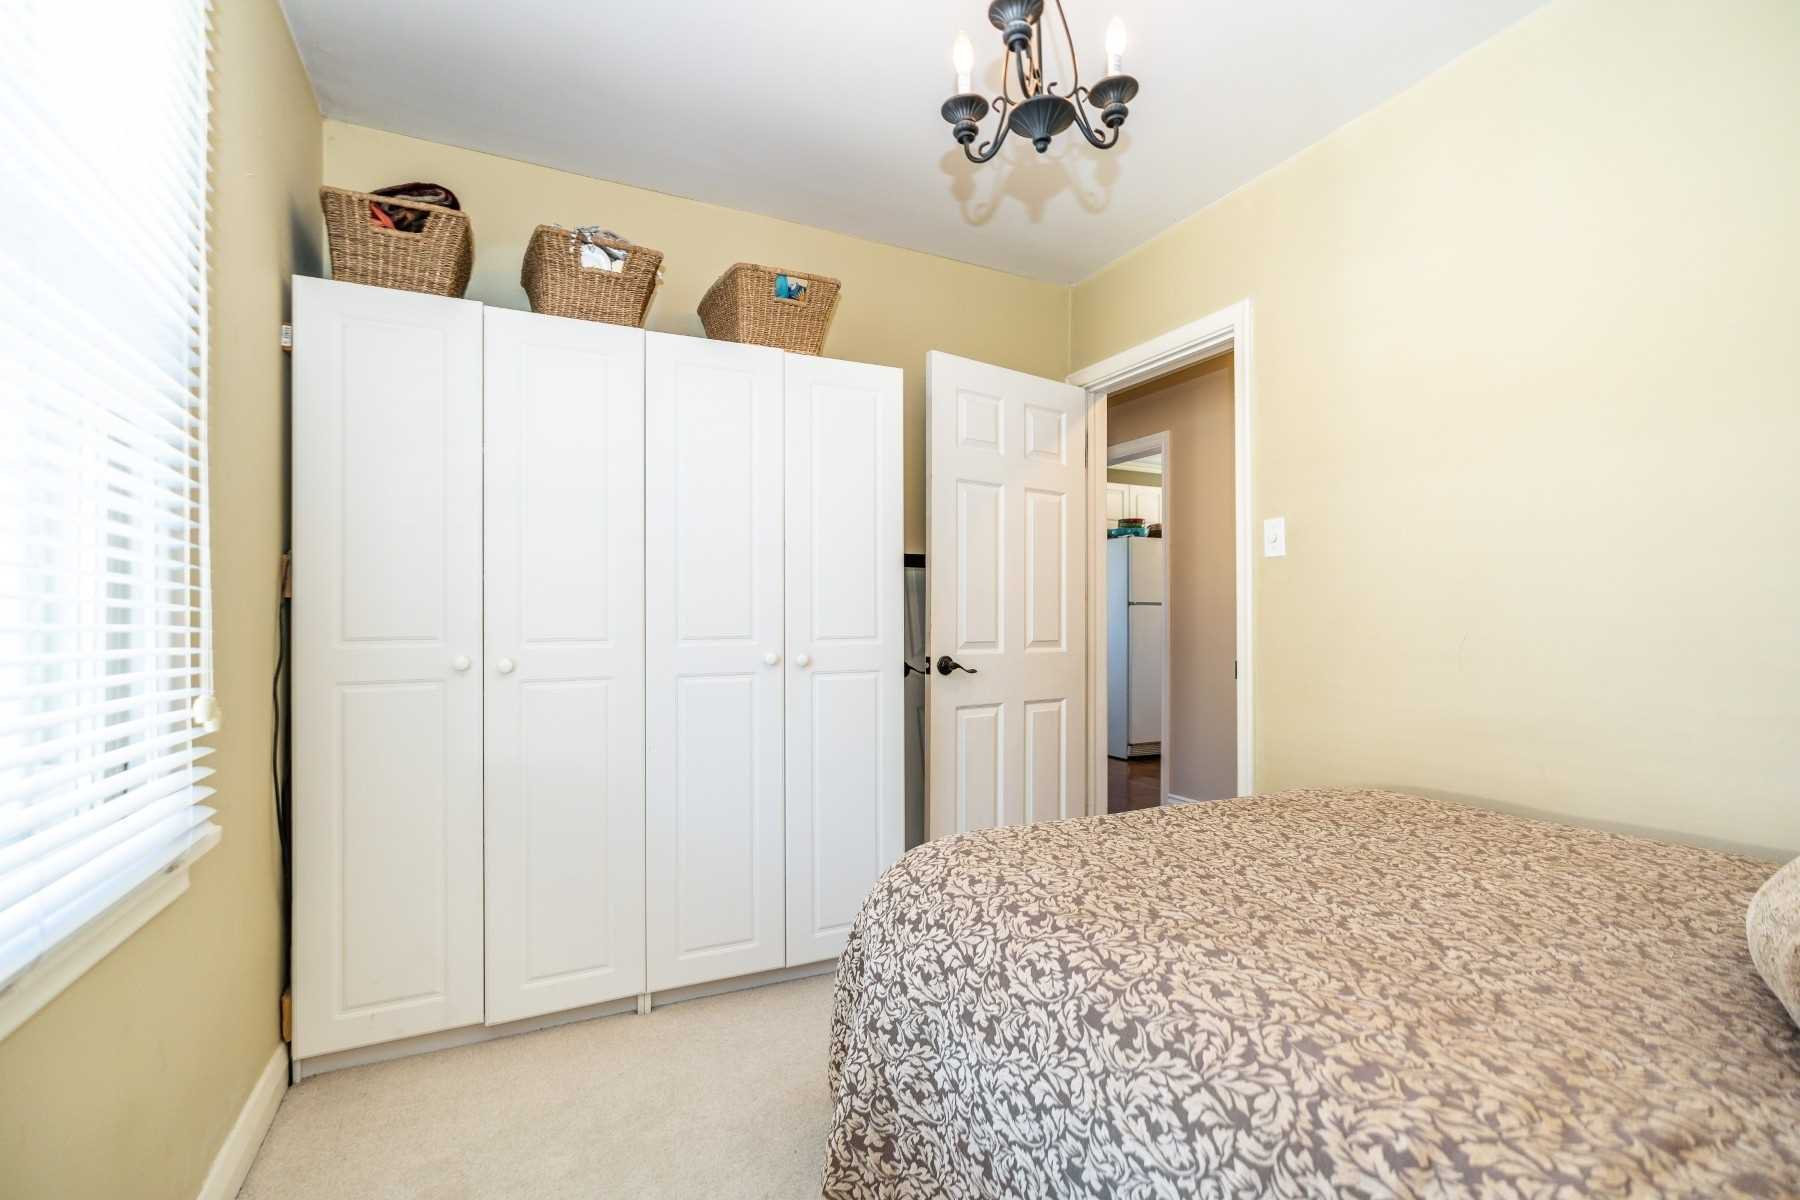 Photo 35: Photos: 40 Eastlawn Street in Oshawa: Donevan House (Bungalow) for sale : MLS®# E4769026